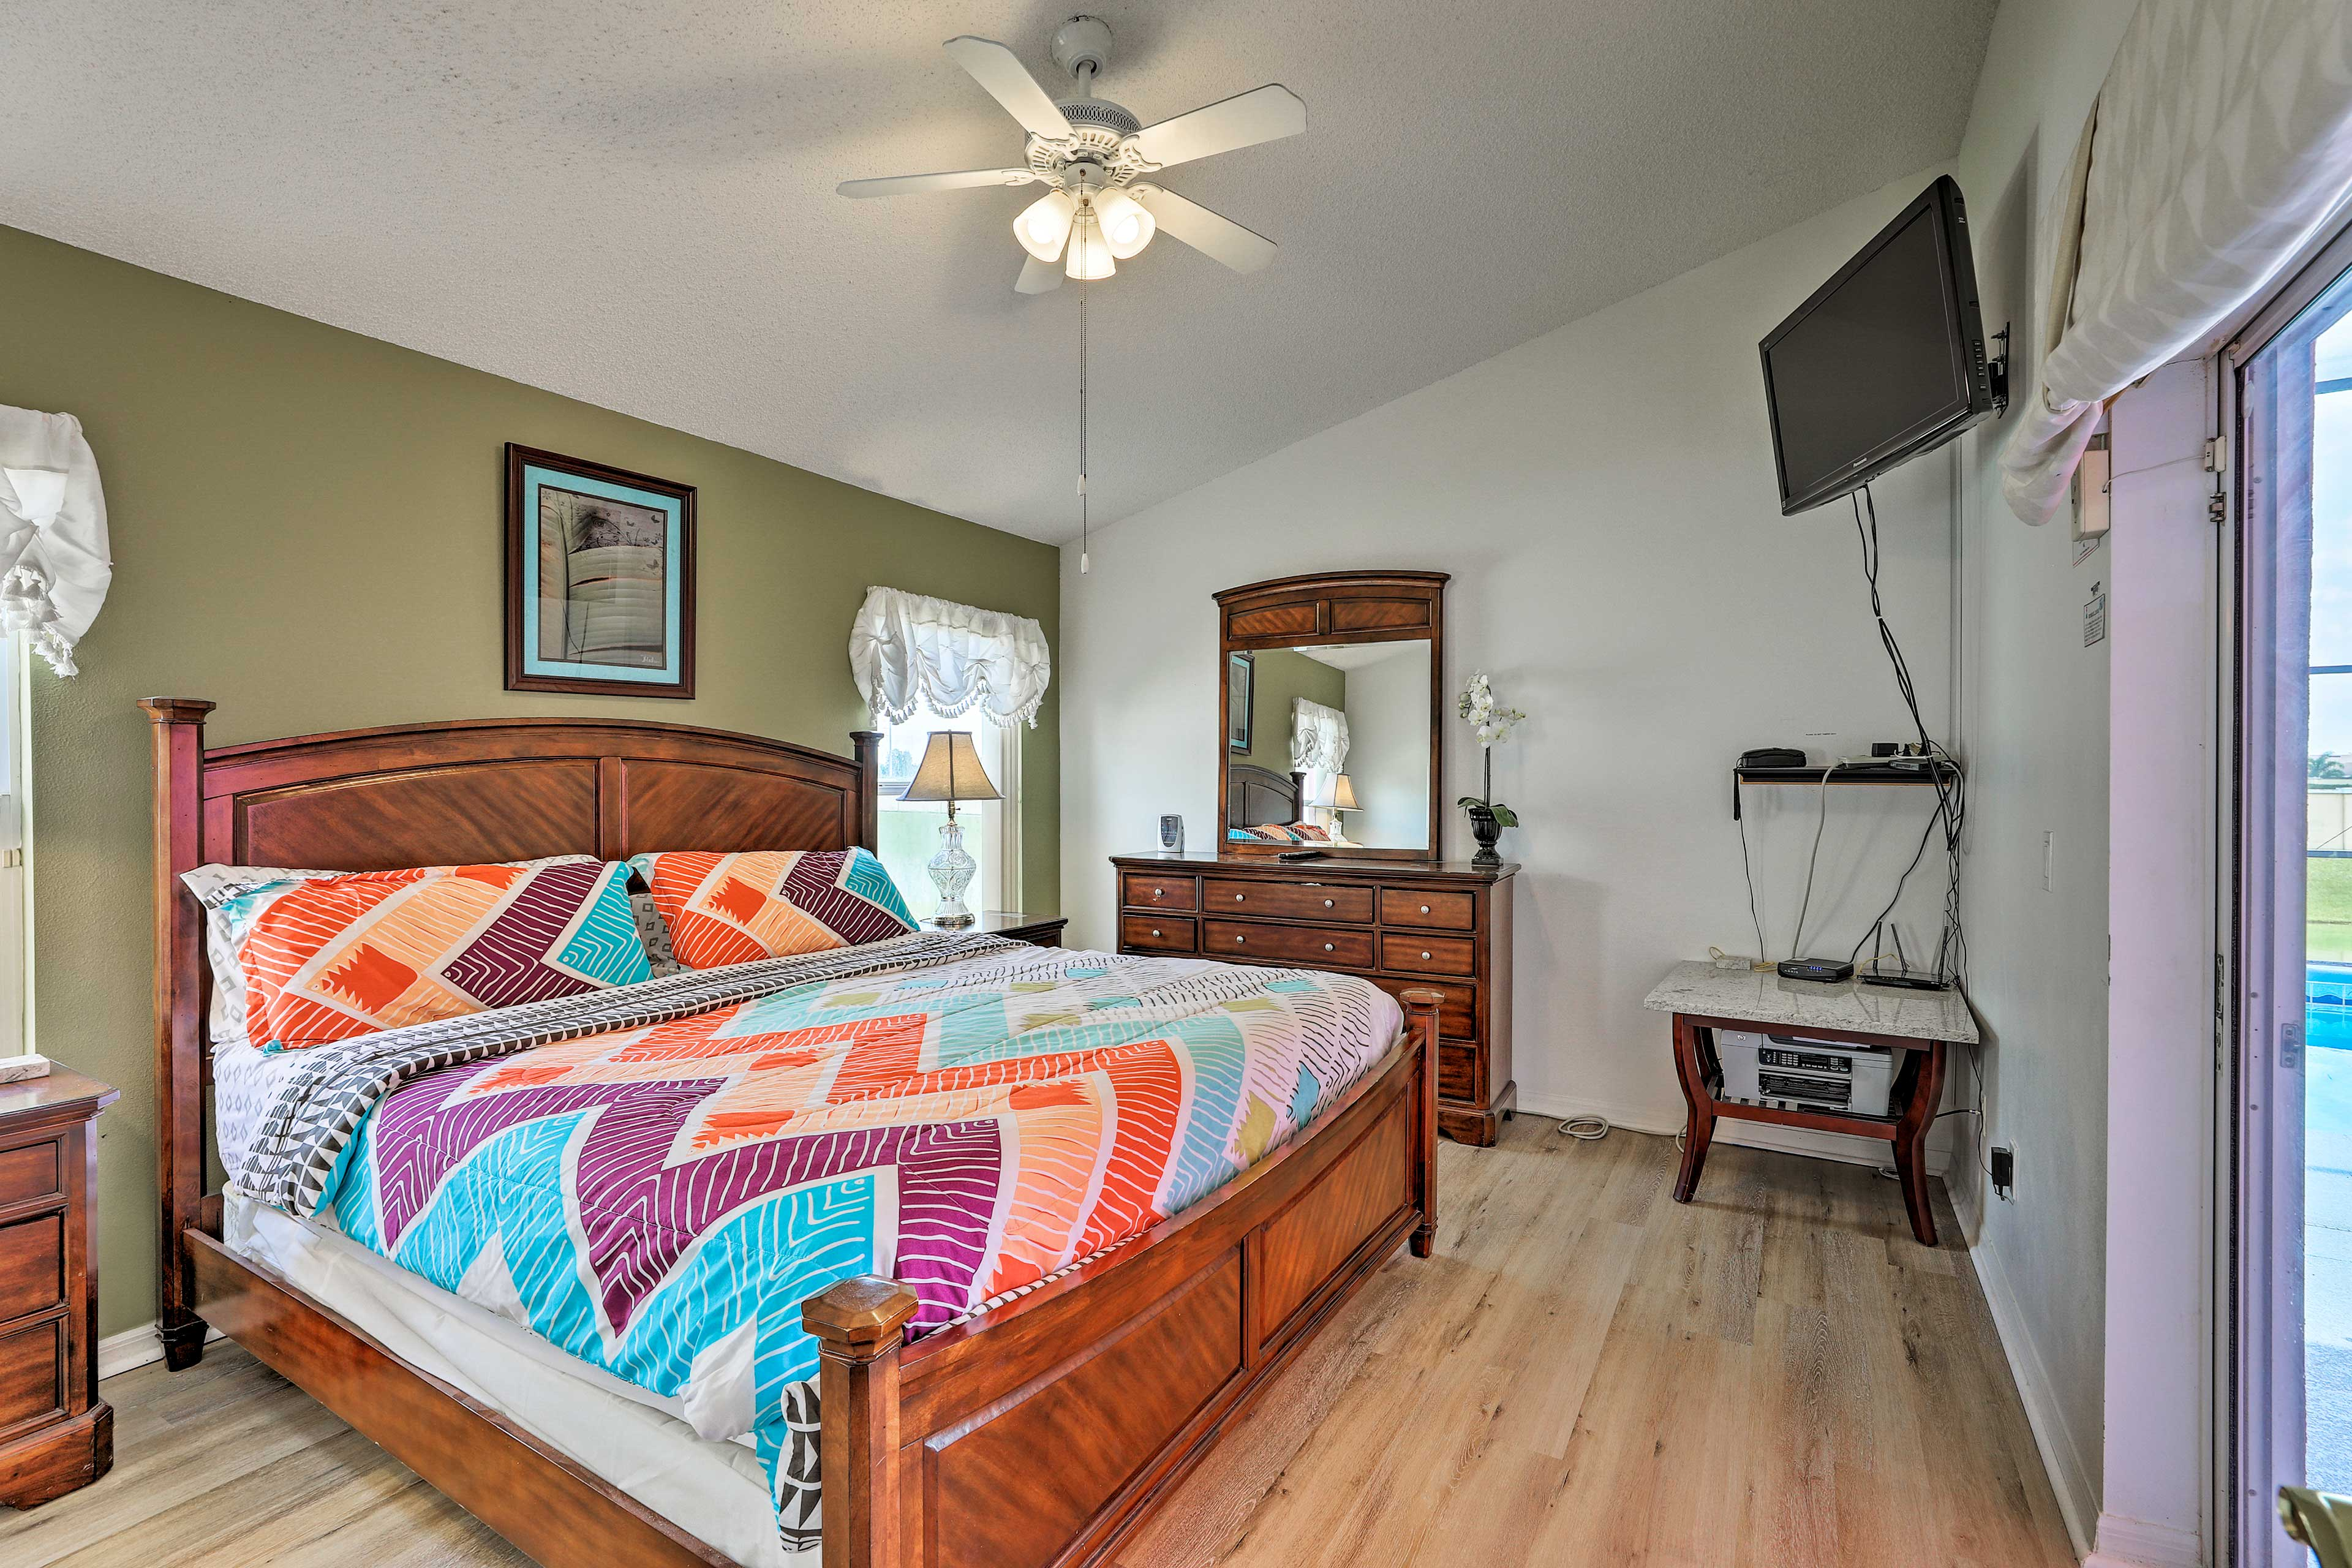 The master bedroom features a California king bed!